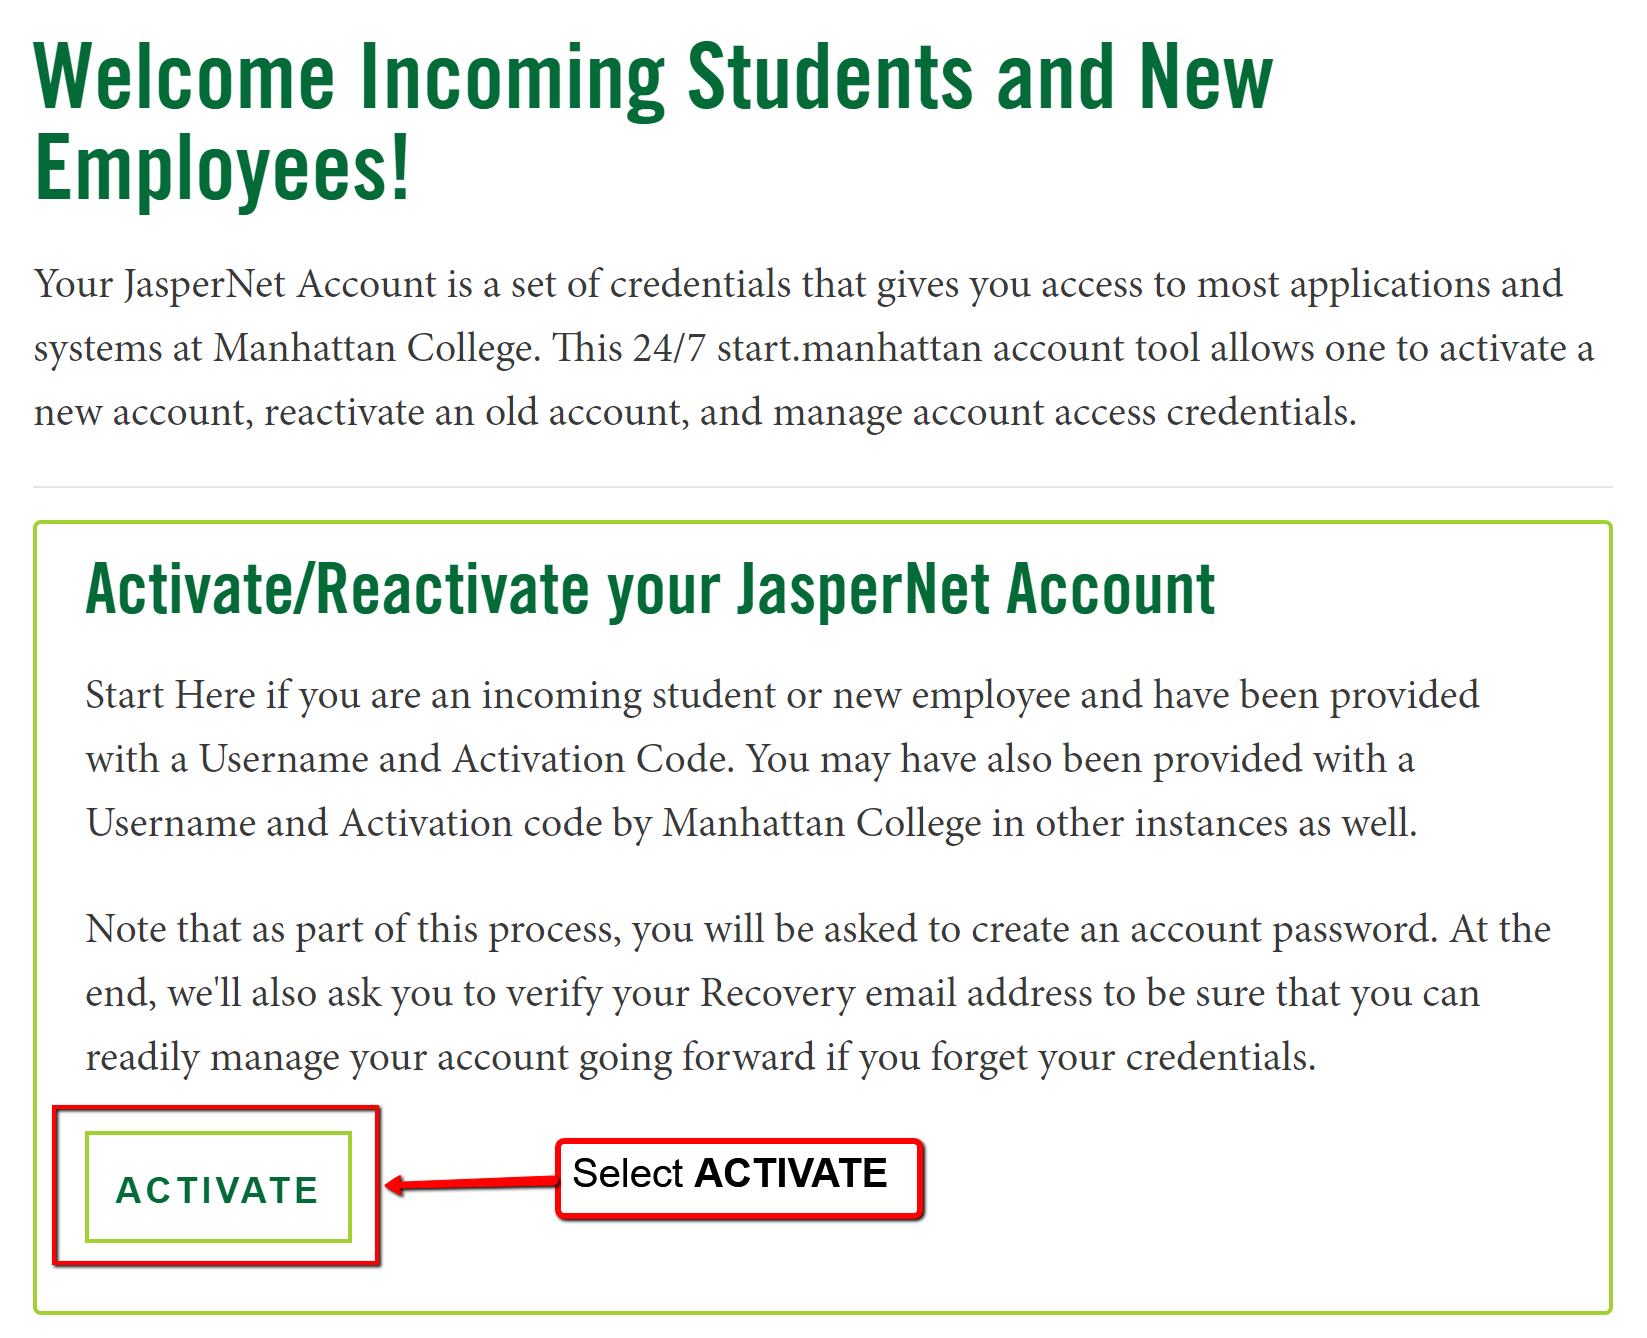 image depicting the activation page for manhattan college